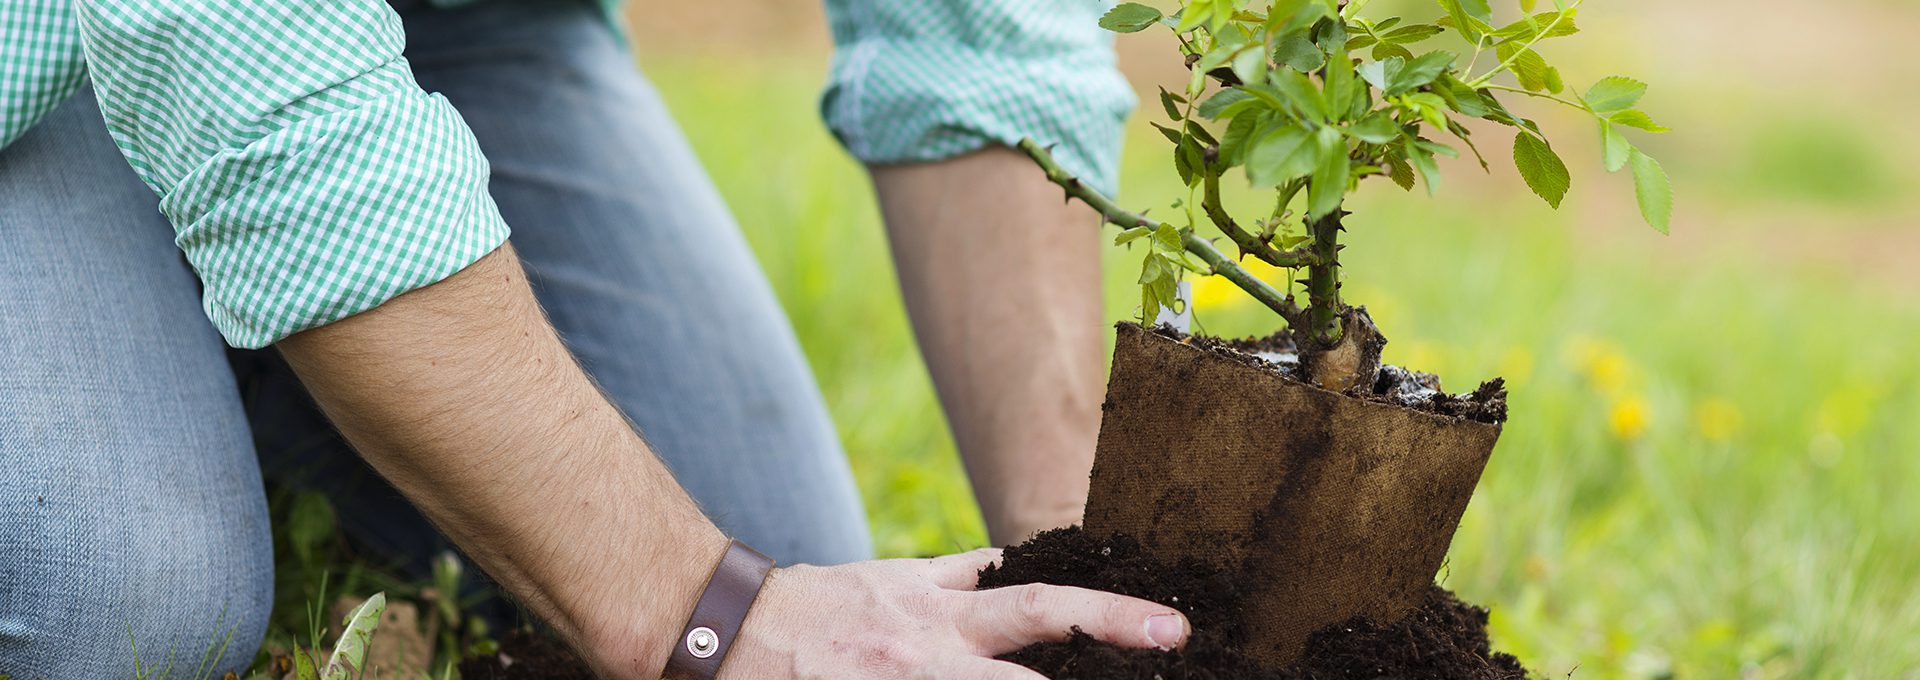 5 Easy Tips to Go Green in College